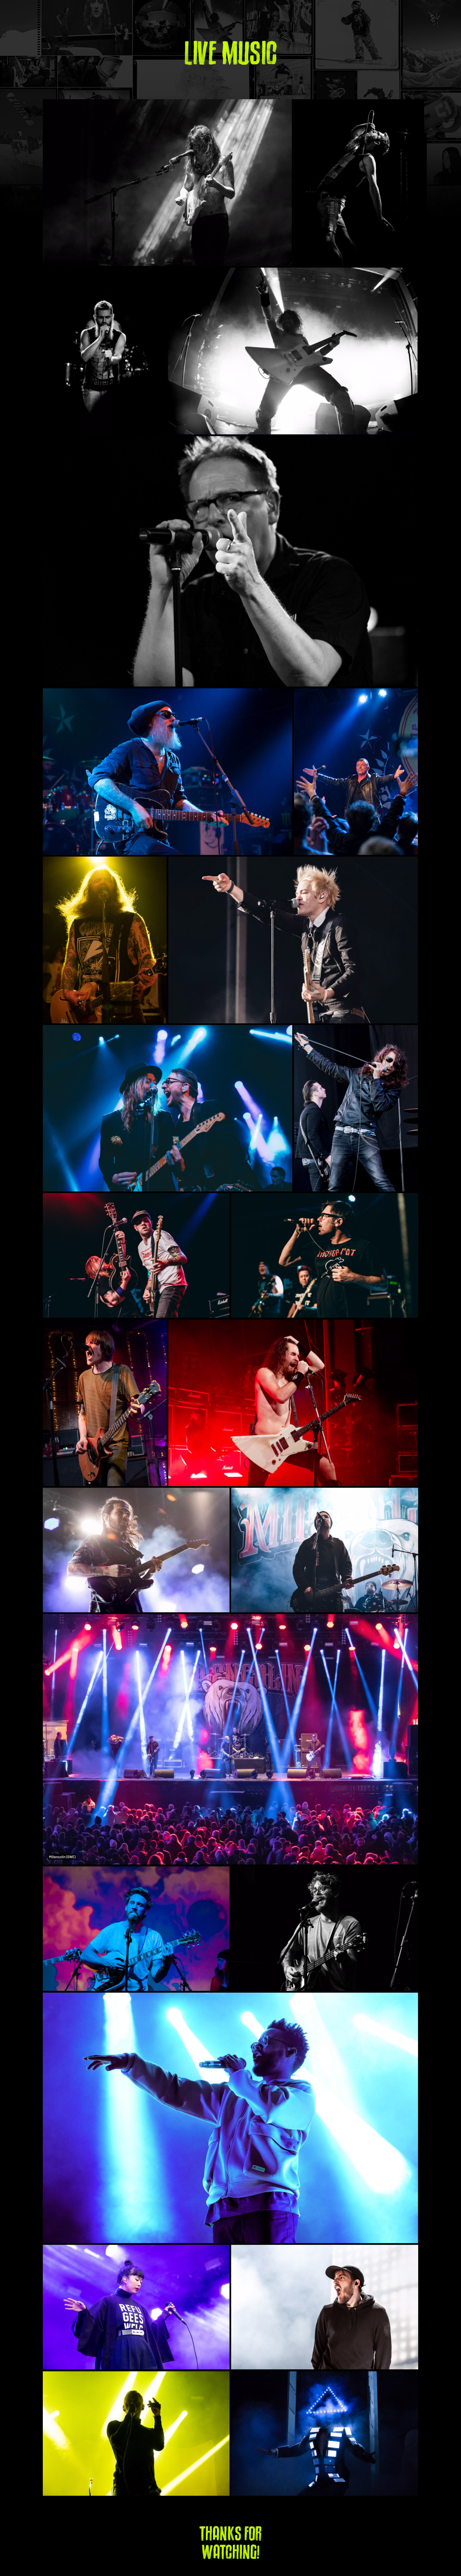 band concert Event festival guitar music Photography  rock Stage tour